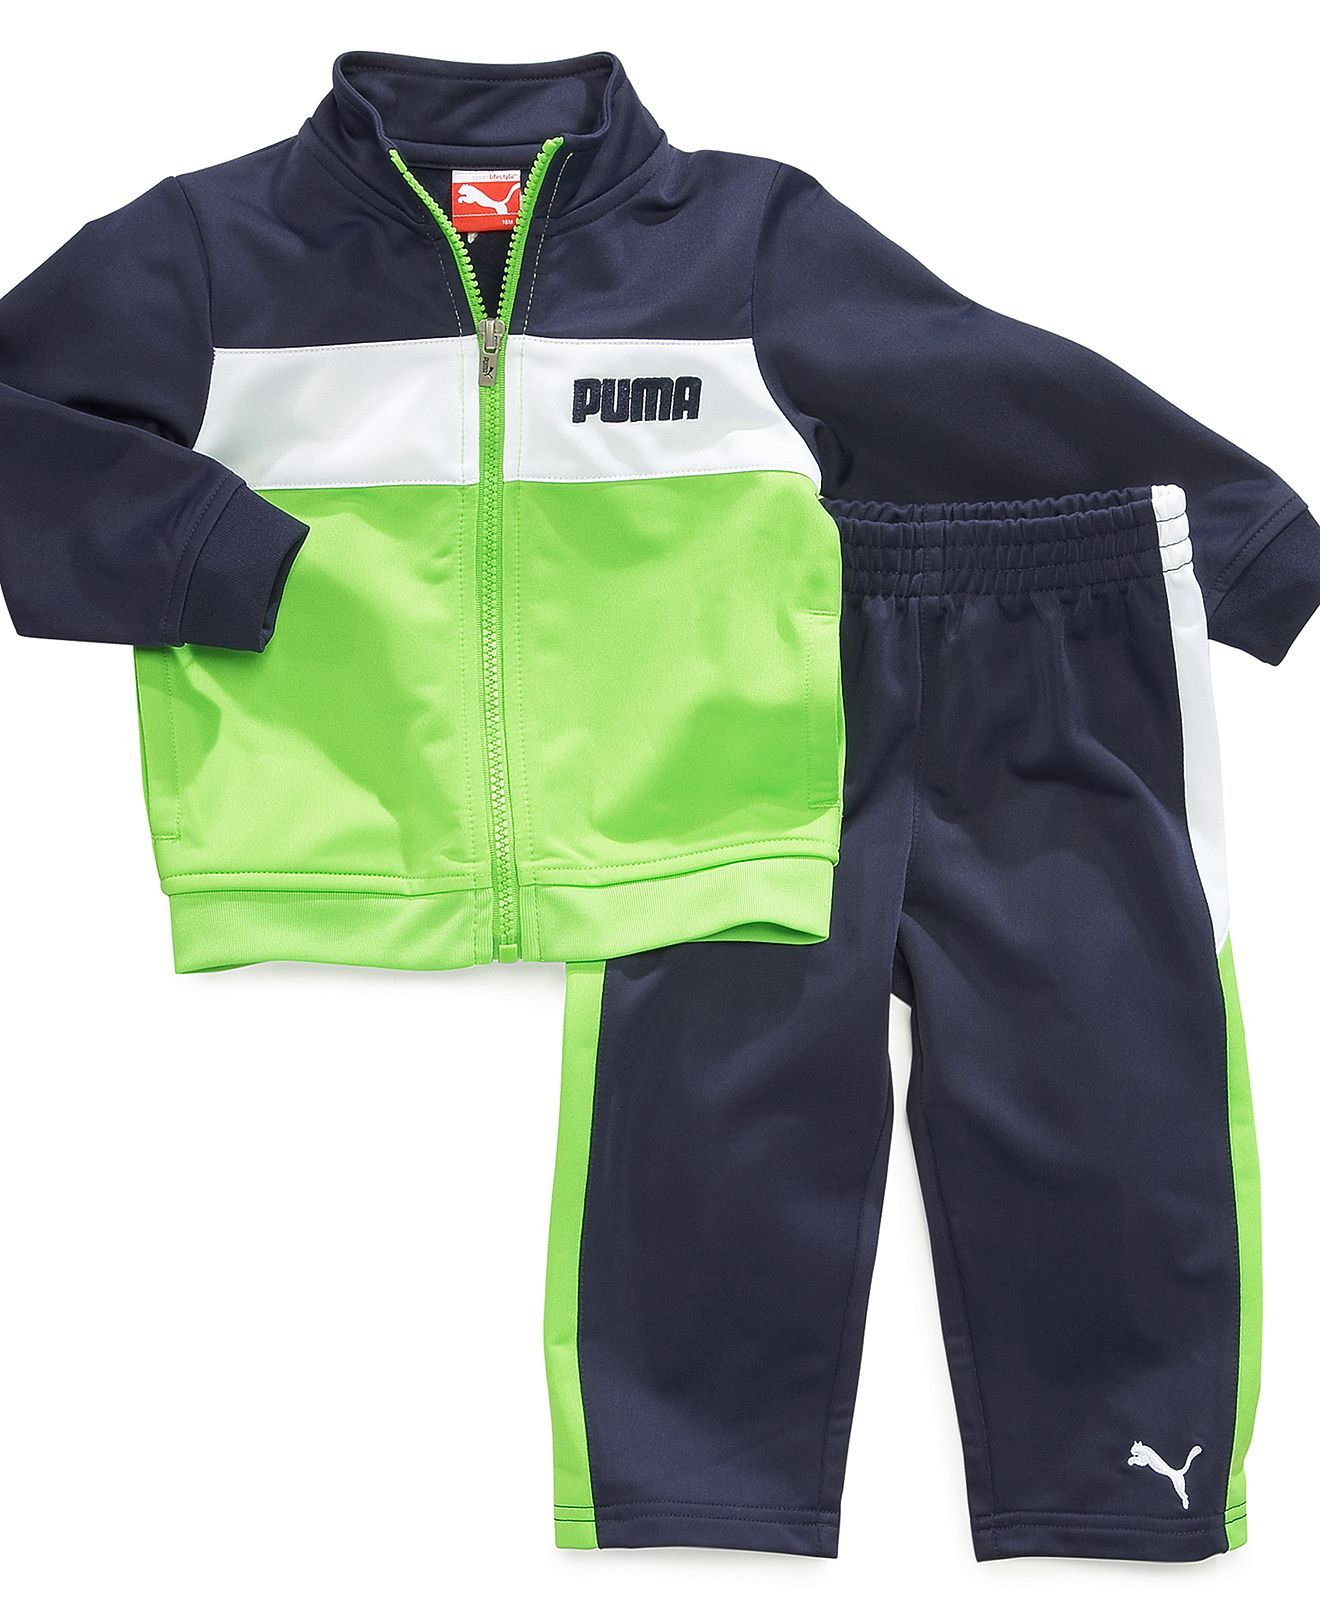 Puma Baby Set Baby Boys 2 Piece Striped Tricot Jacket and Pants